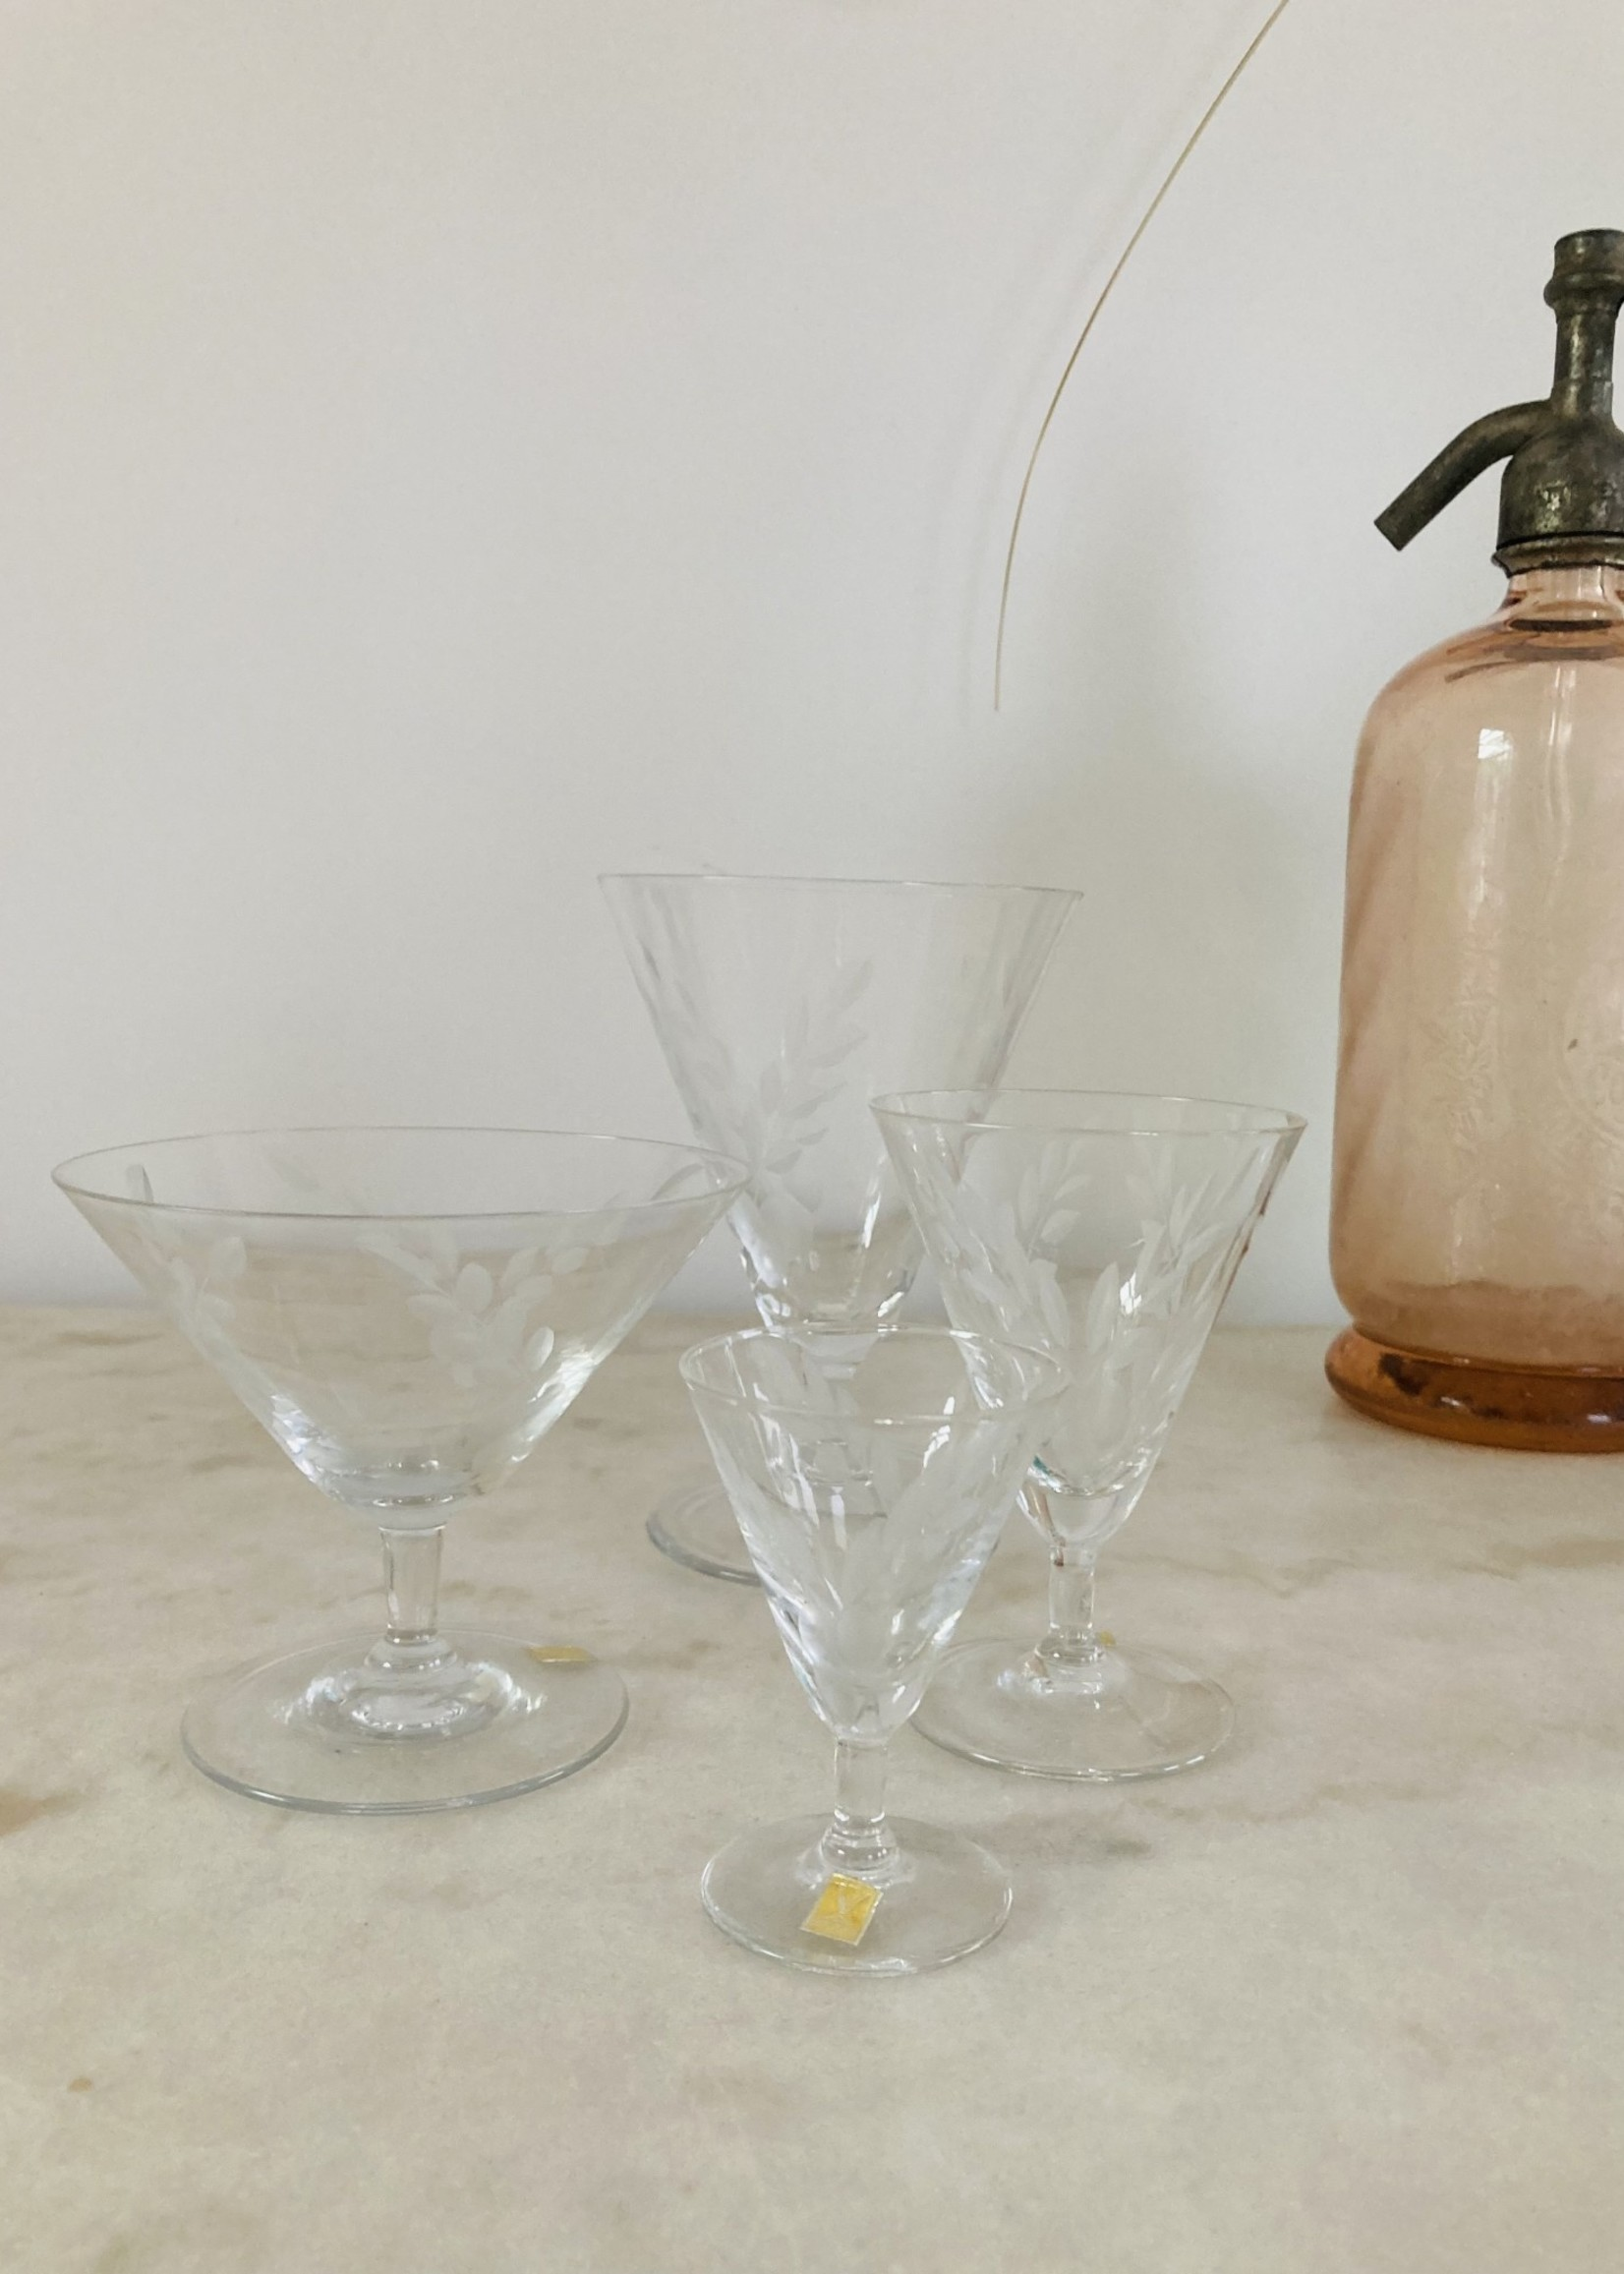 VB Carved crystal conic Waterglasses from Boussu